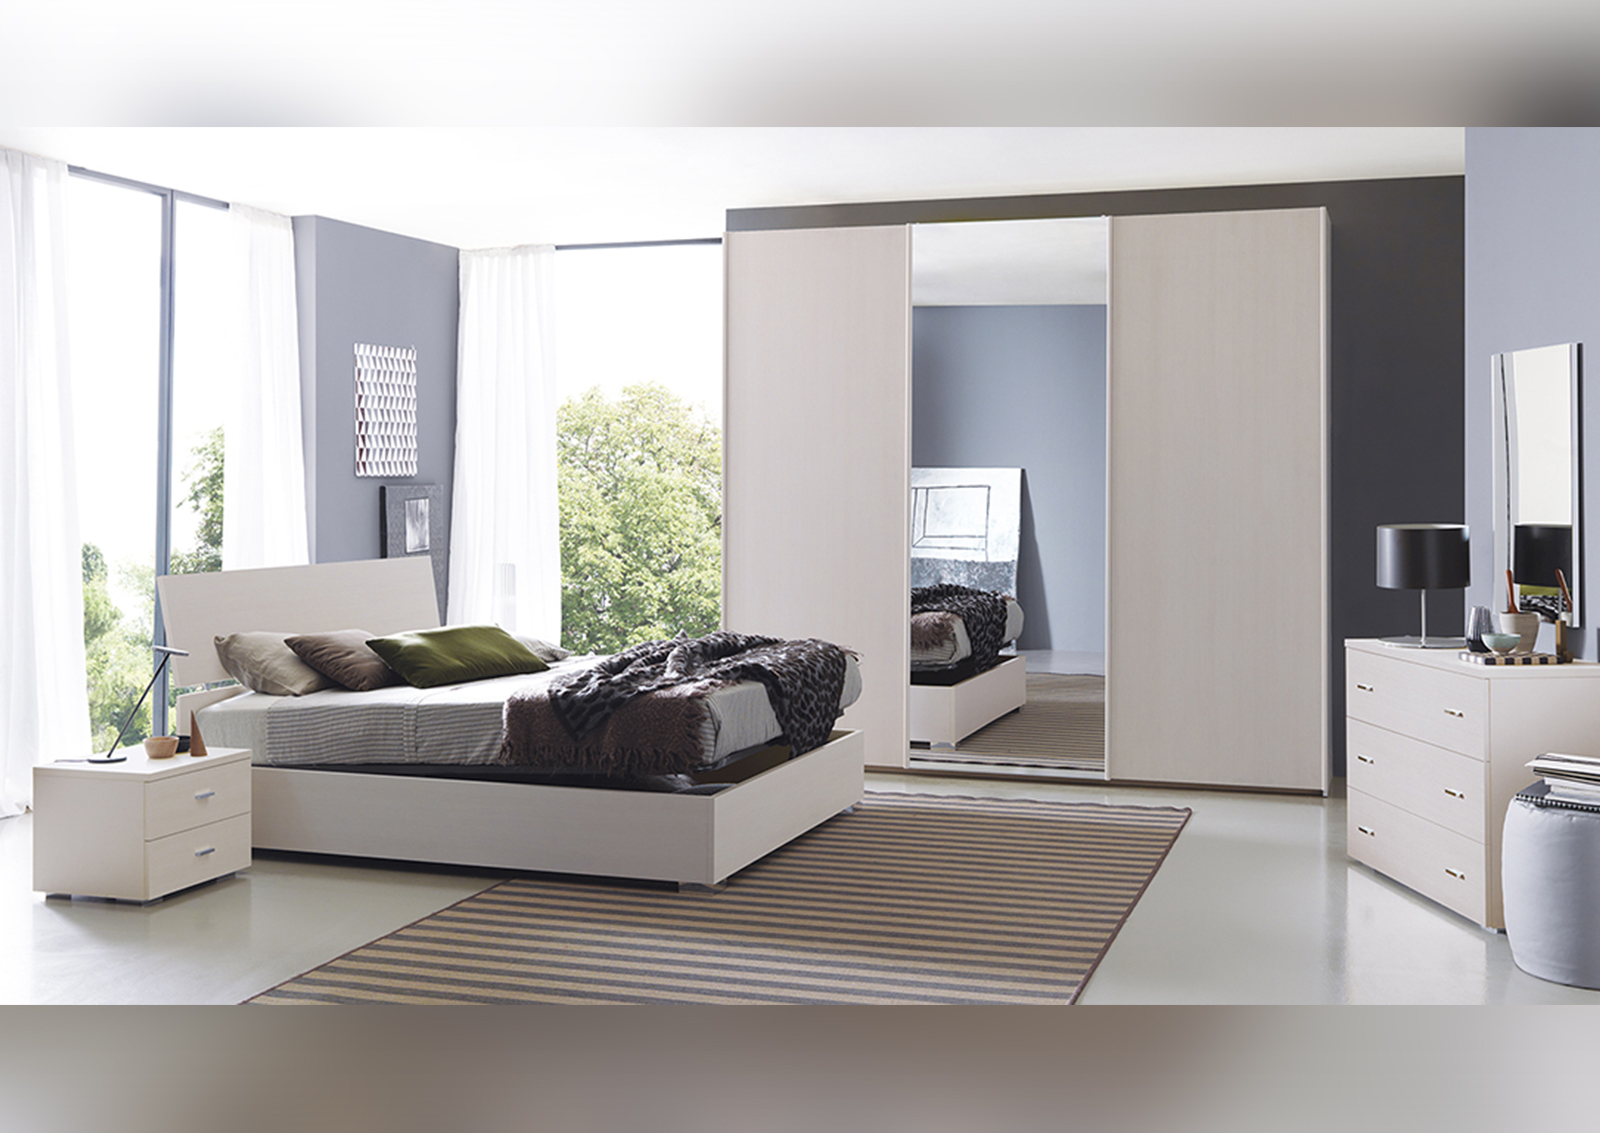 Come arredare la camera da letto matrimoniale design italia - Camera da letto 3x4 ...